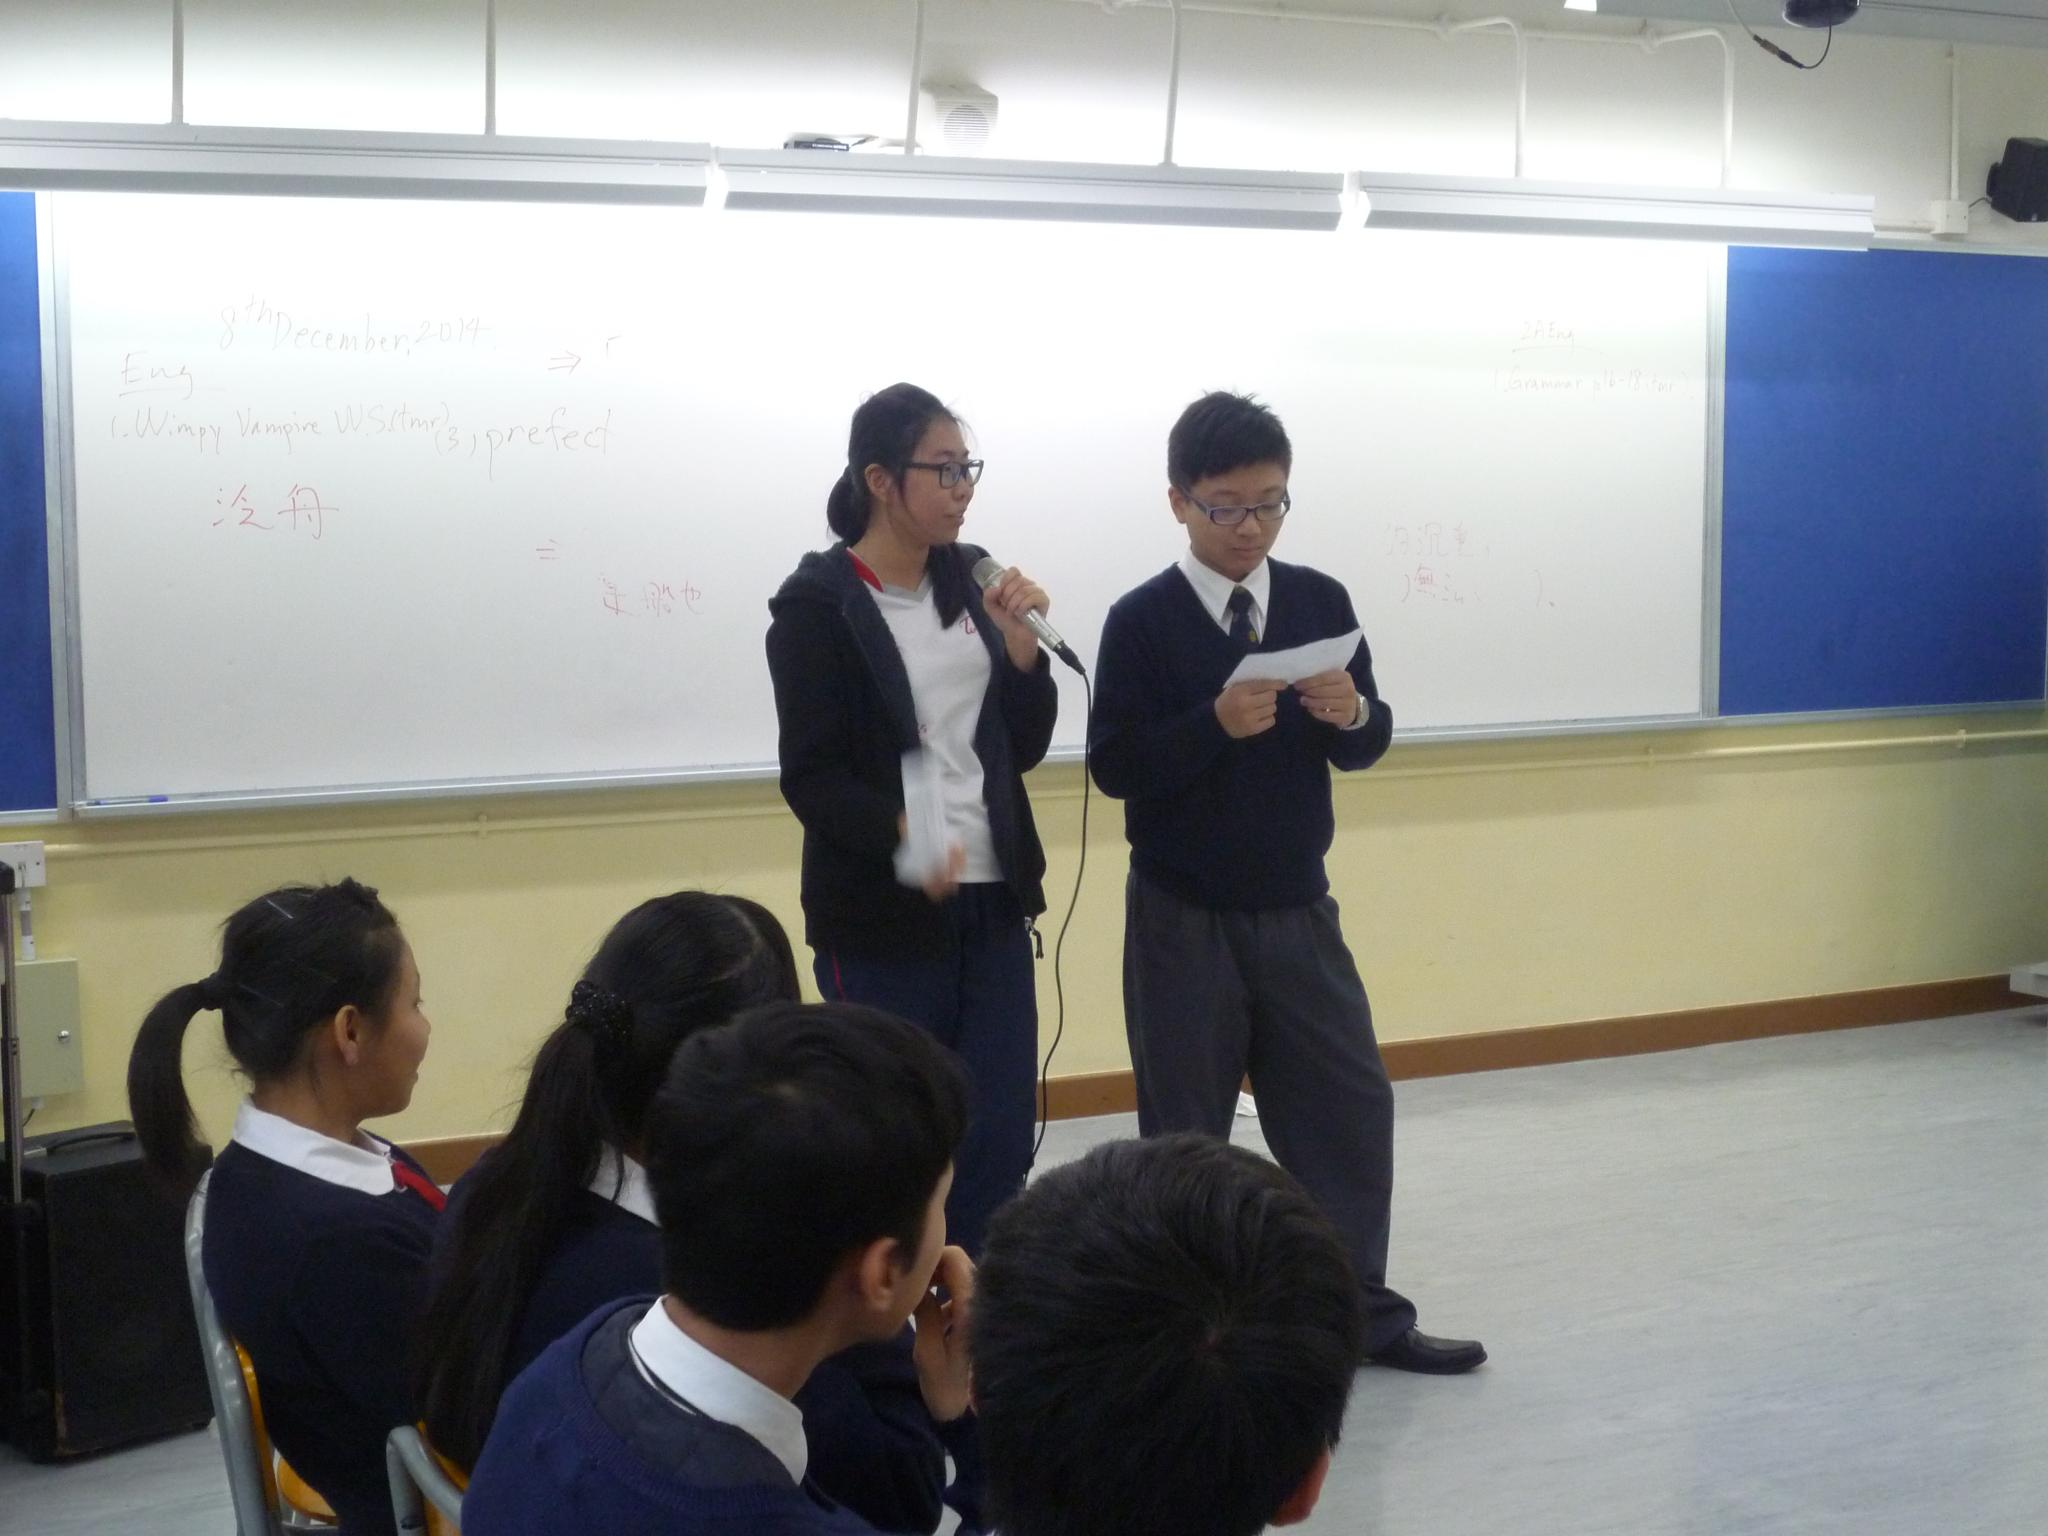 Class representatives are introducing the activity rundown to all participants.